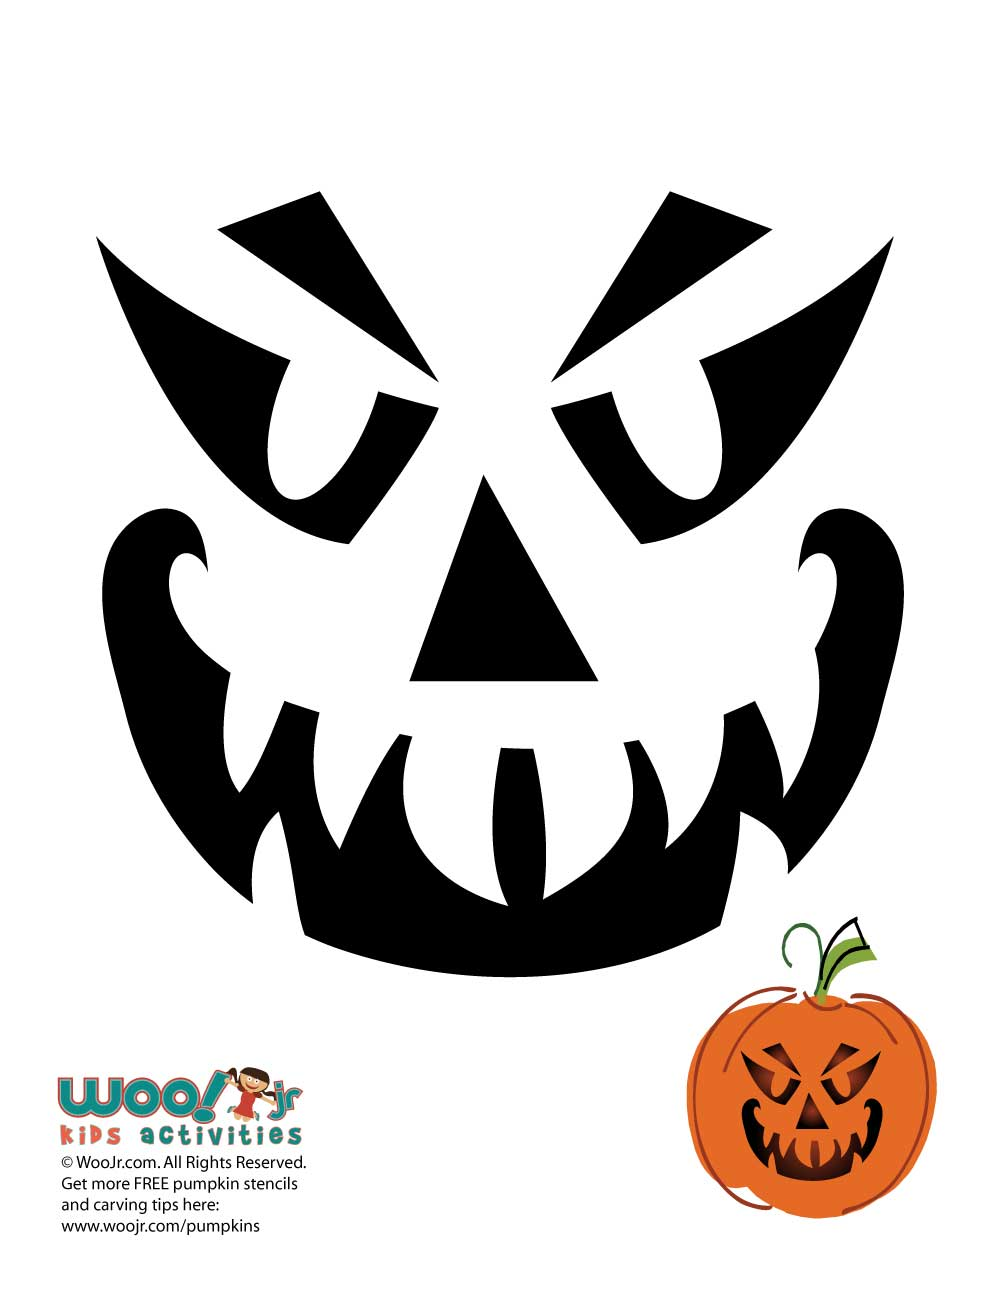 evil face pumpkin template - evil pumpkin face woo jr kids activities